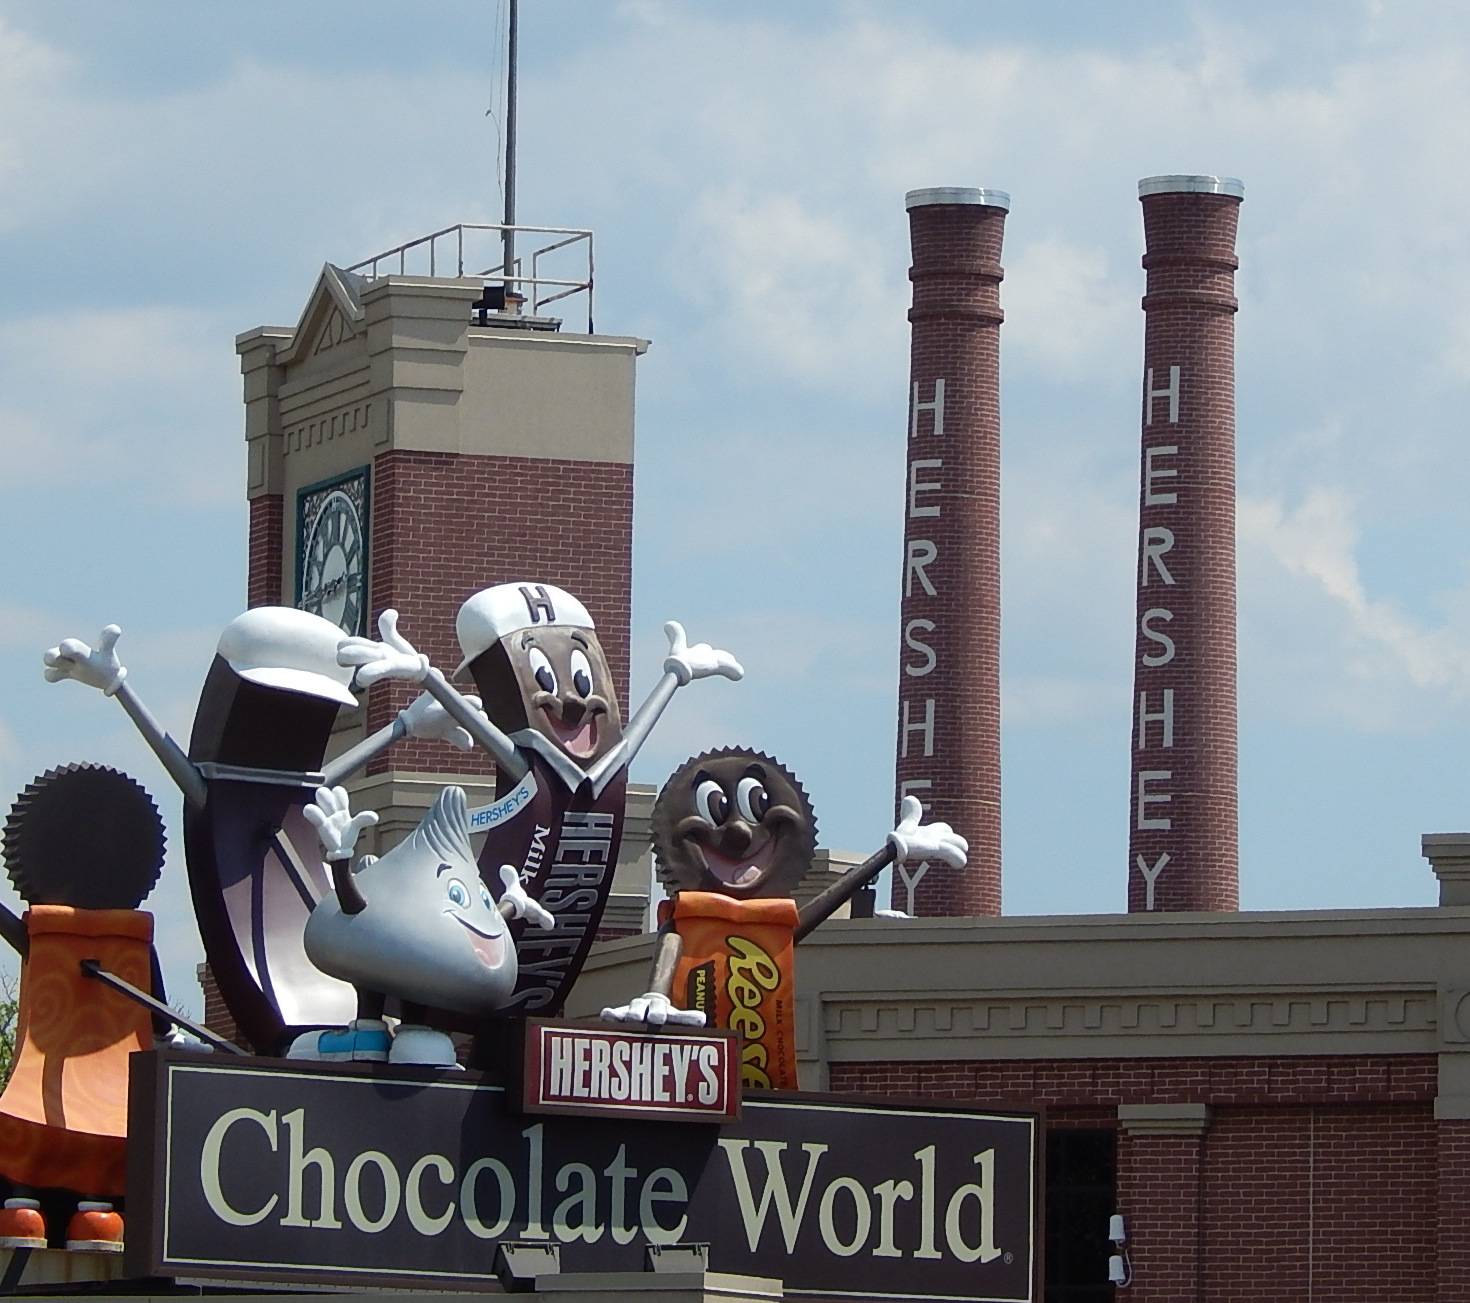 Behind The Scenes At Hershey's Chocolate World - Theme Park University